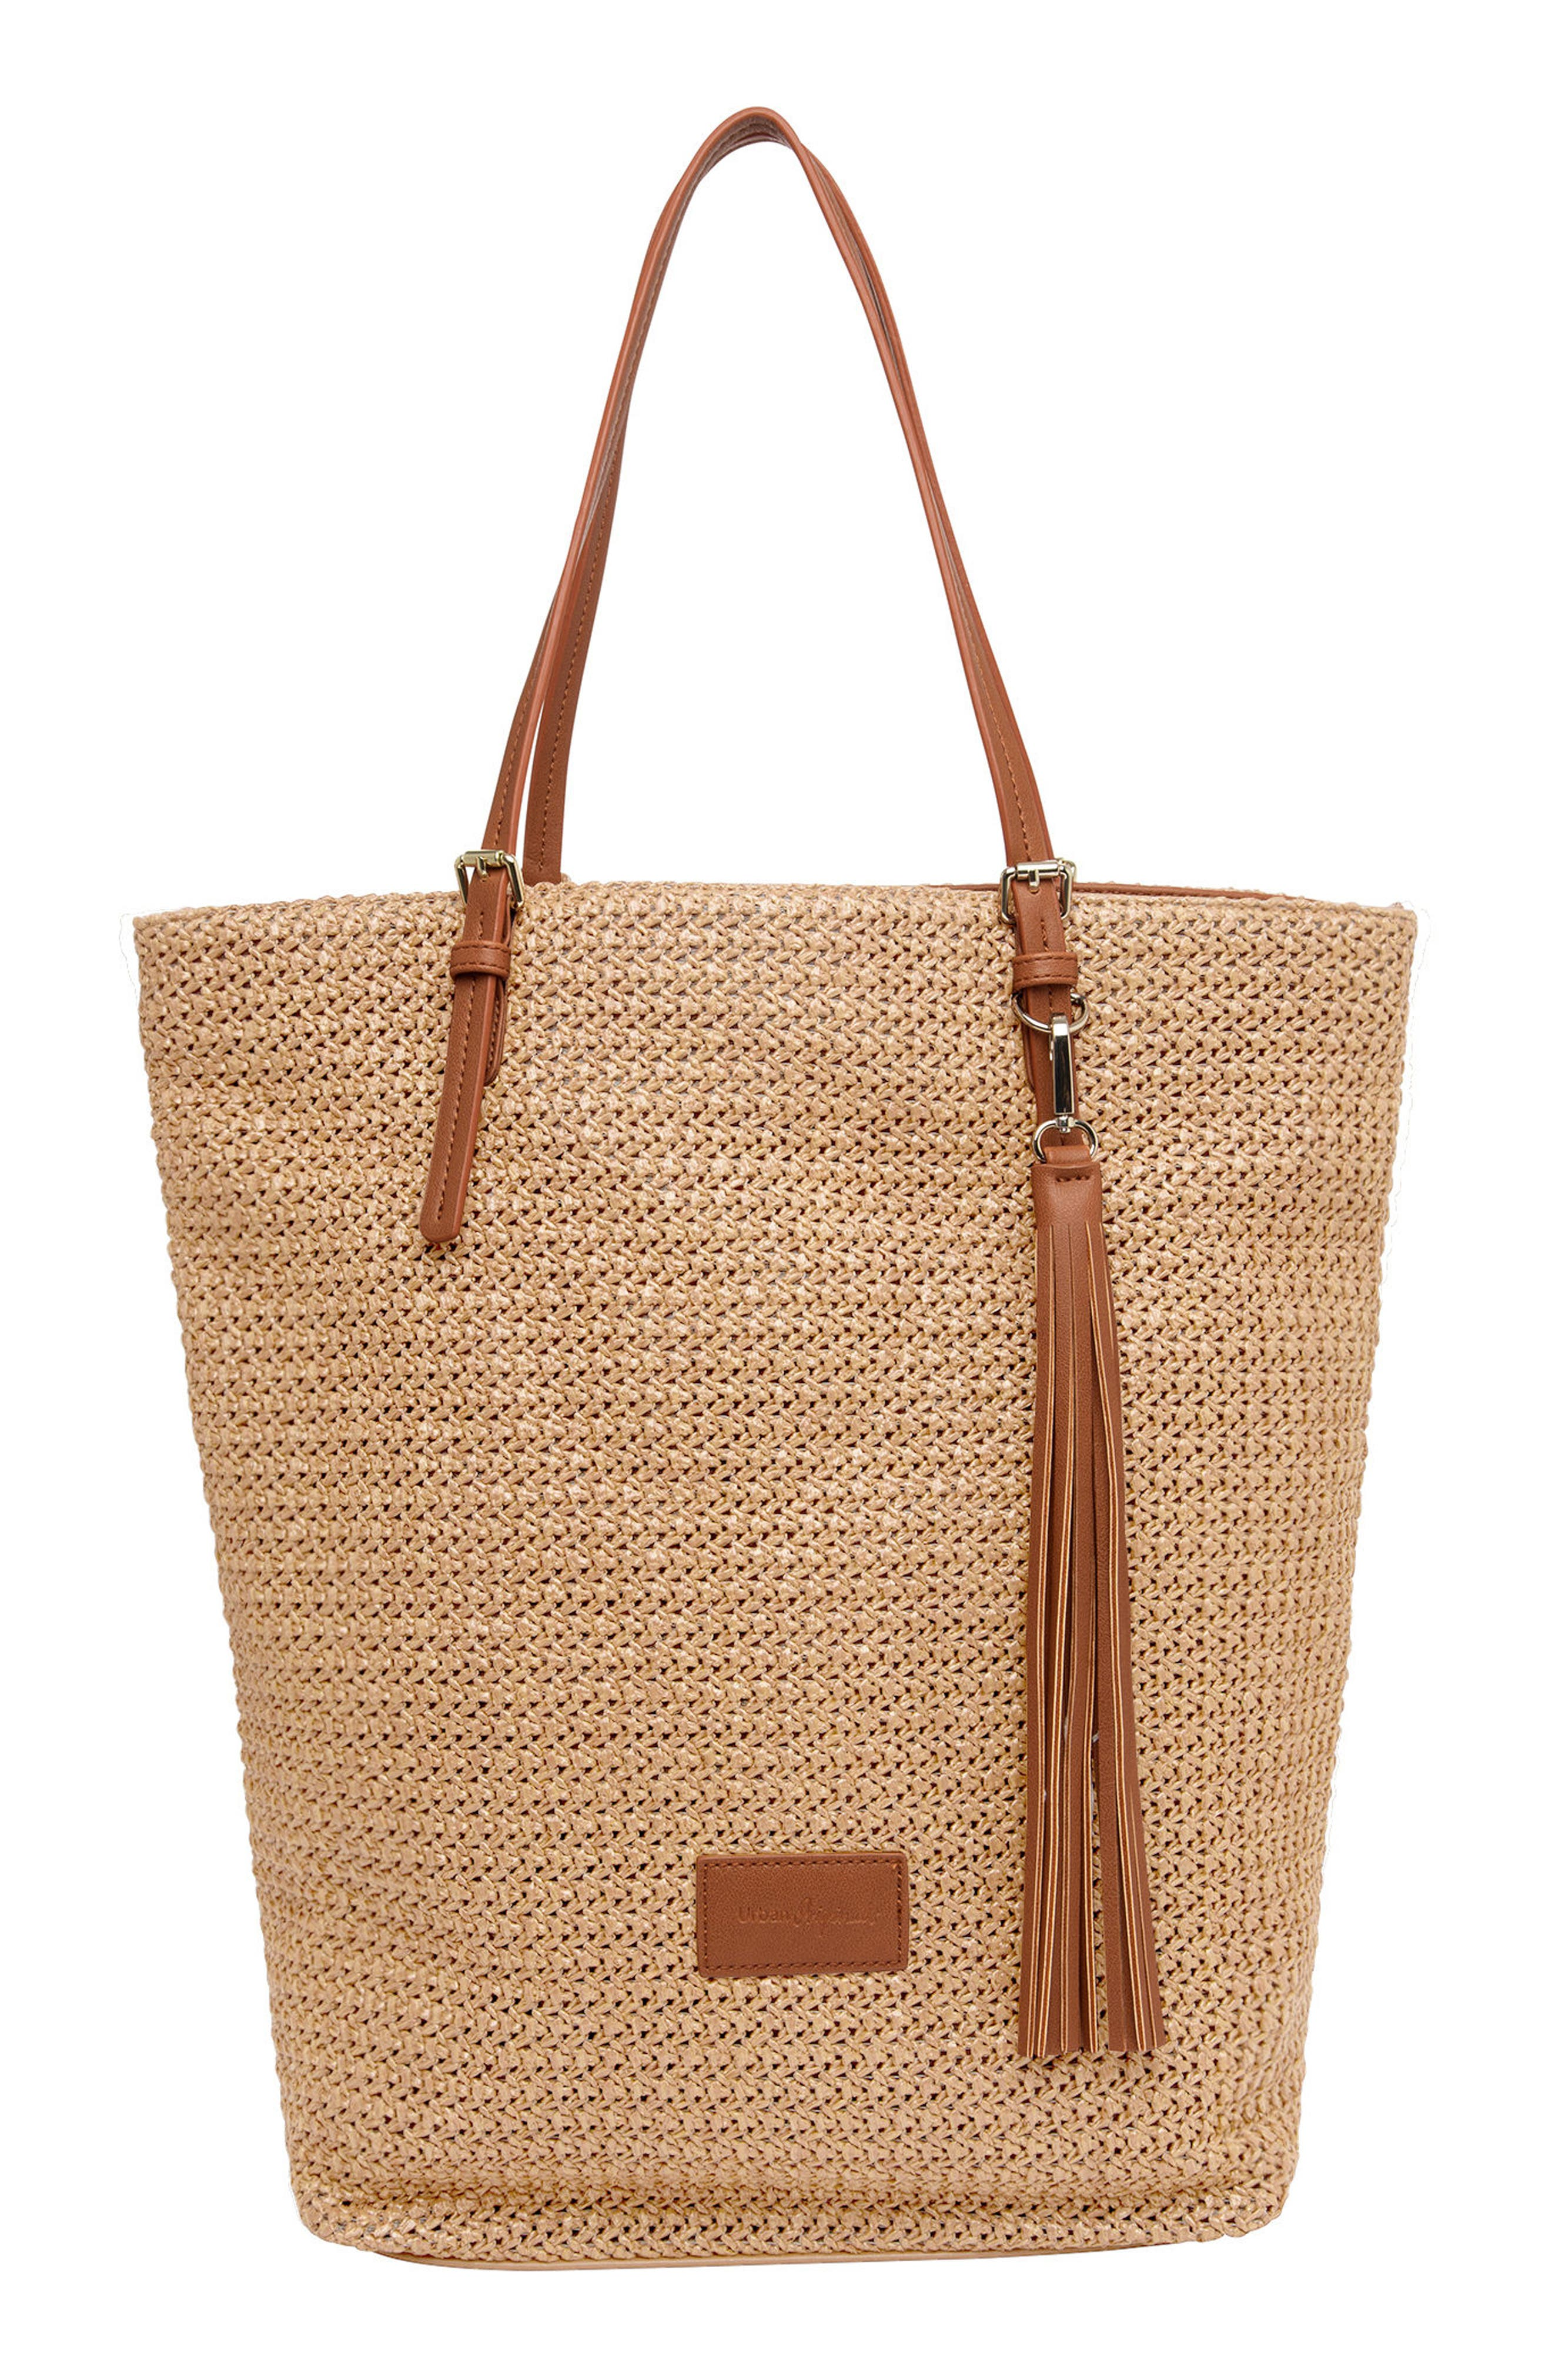 URBAN ORIGINALS St. Barths Vegan Leather Tote